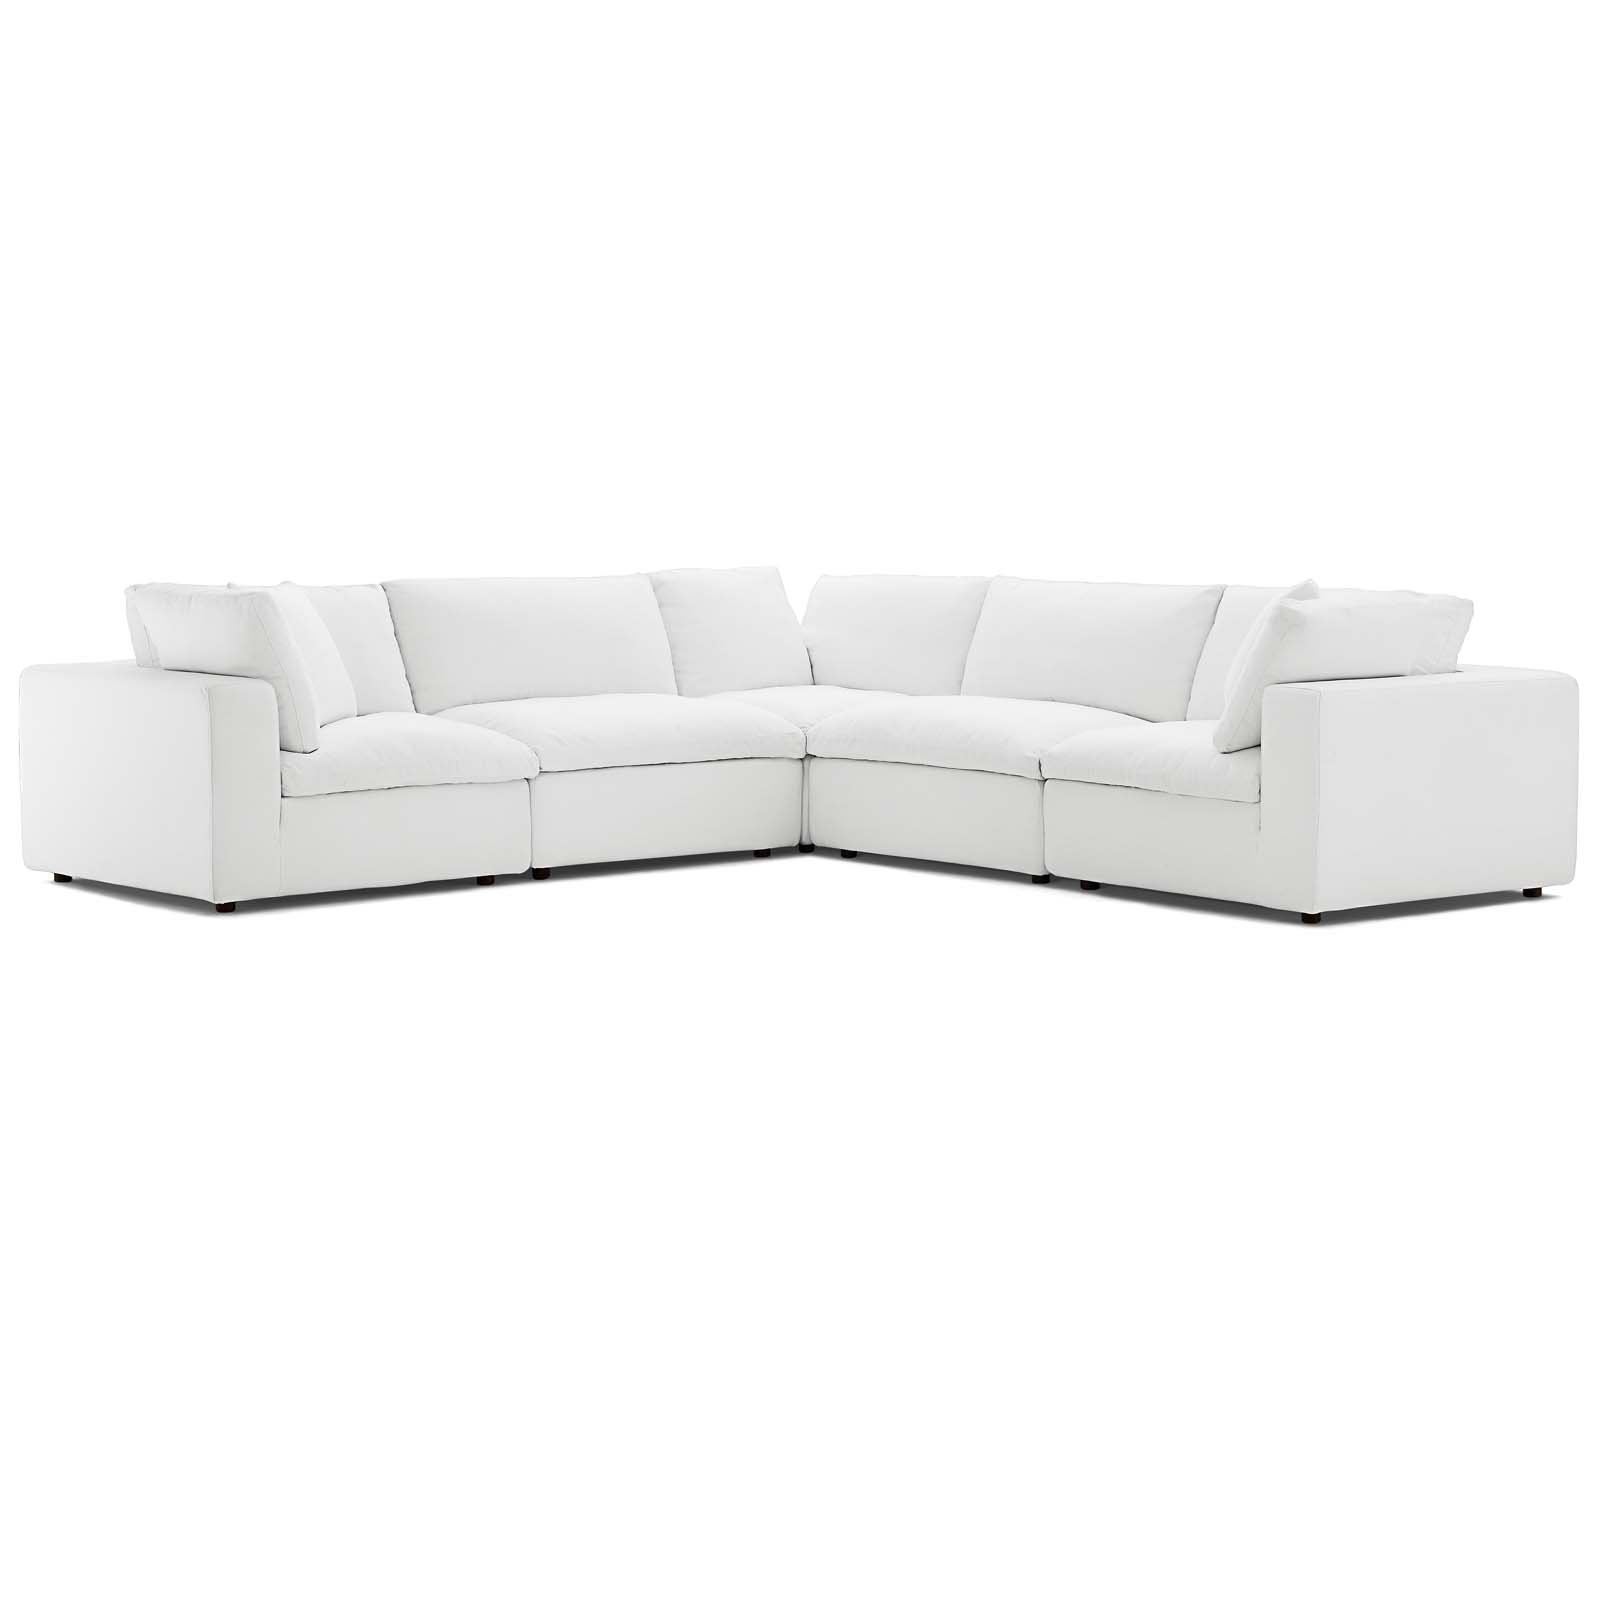 Commix Down Filled Overstuffed 5 Piece Sectional Sofa Set Within Down Filled Sectional Sofas (View 14 of 15)